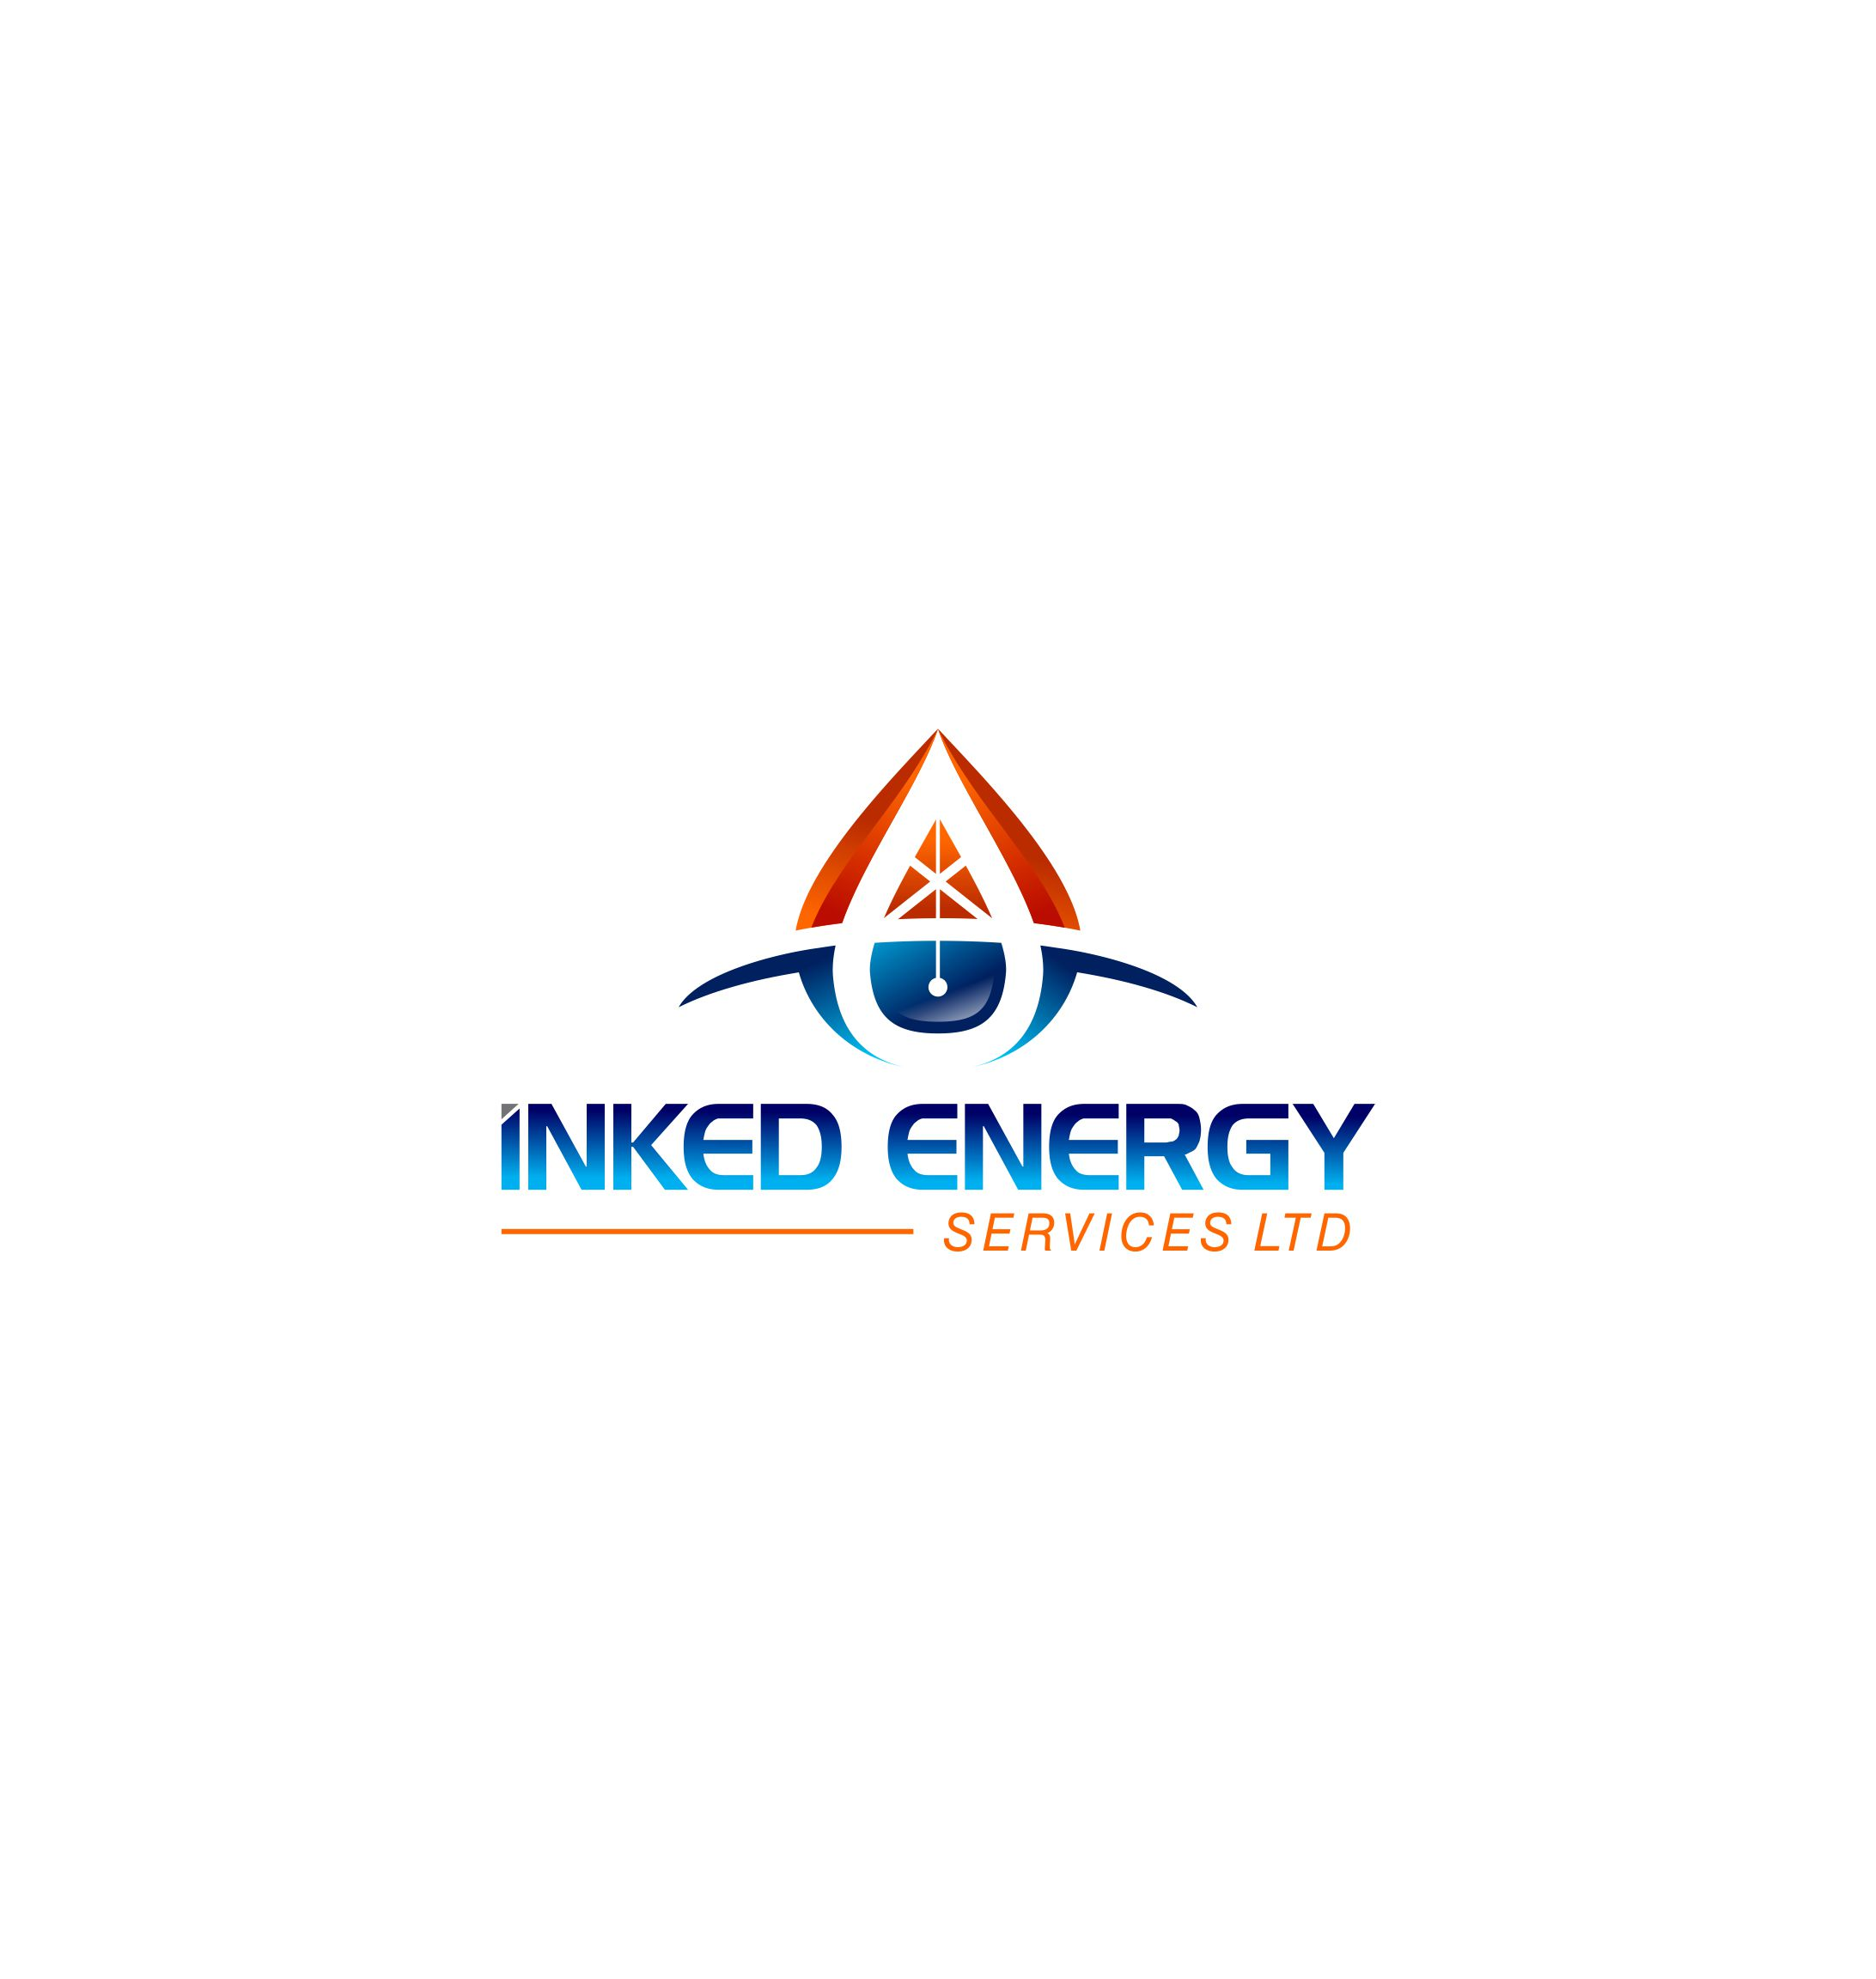 Logo Design by Raymond Garcia - Entry No. 124 in the Logo Design Contest Creative Logo Design for INKED ENERGY SERVICES LTD.